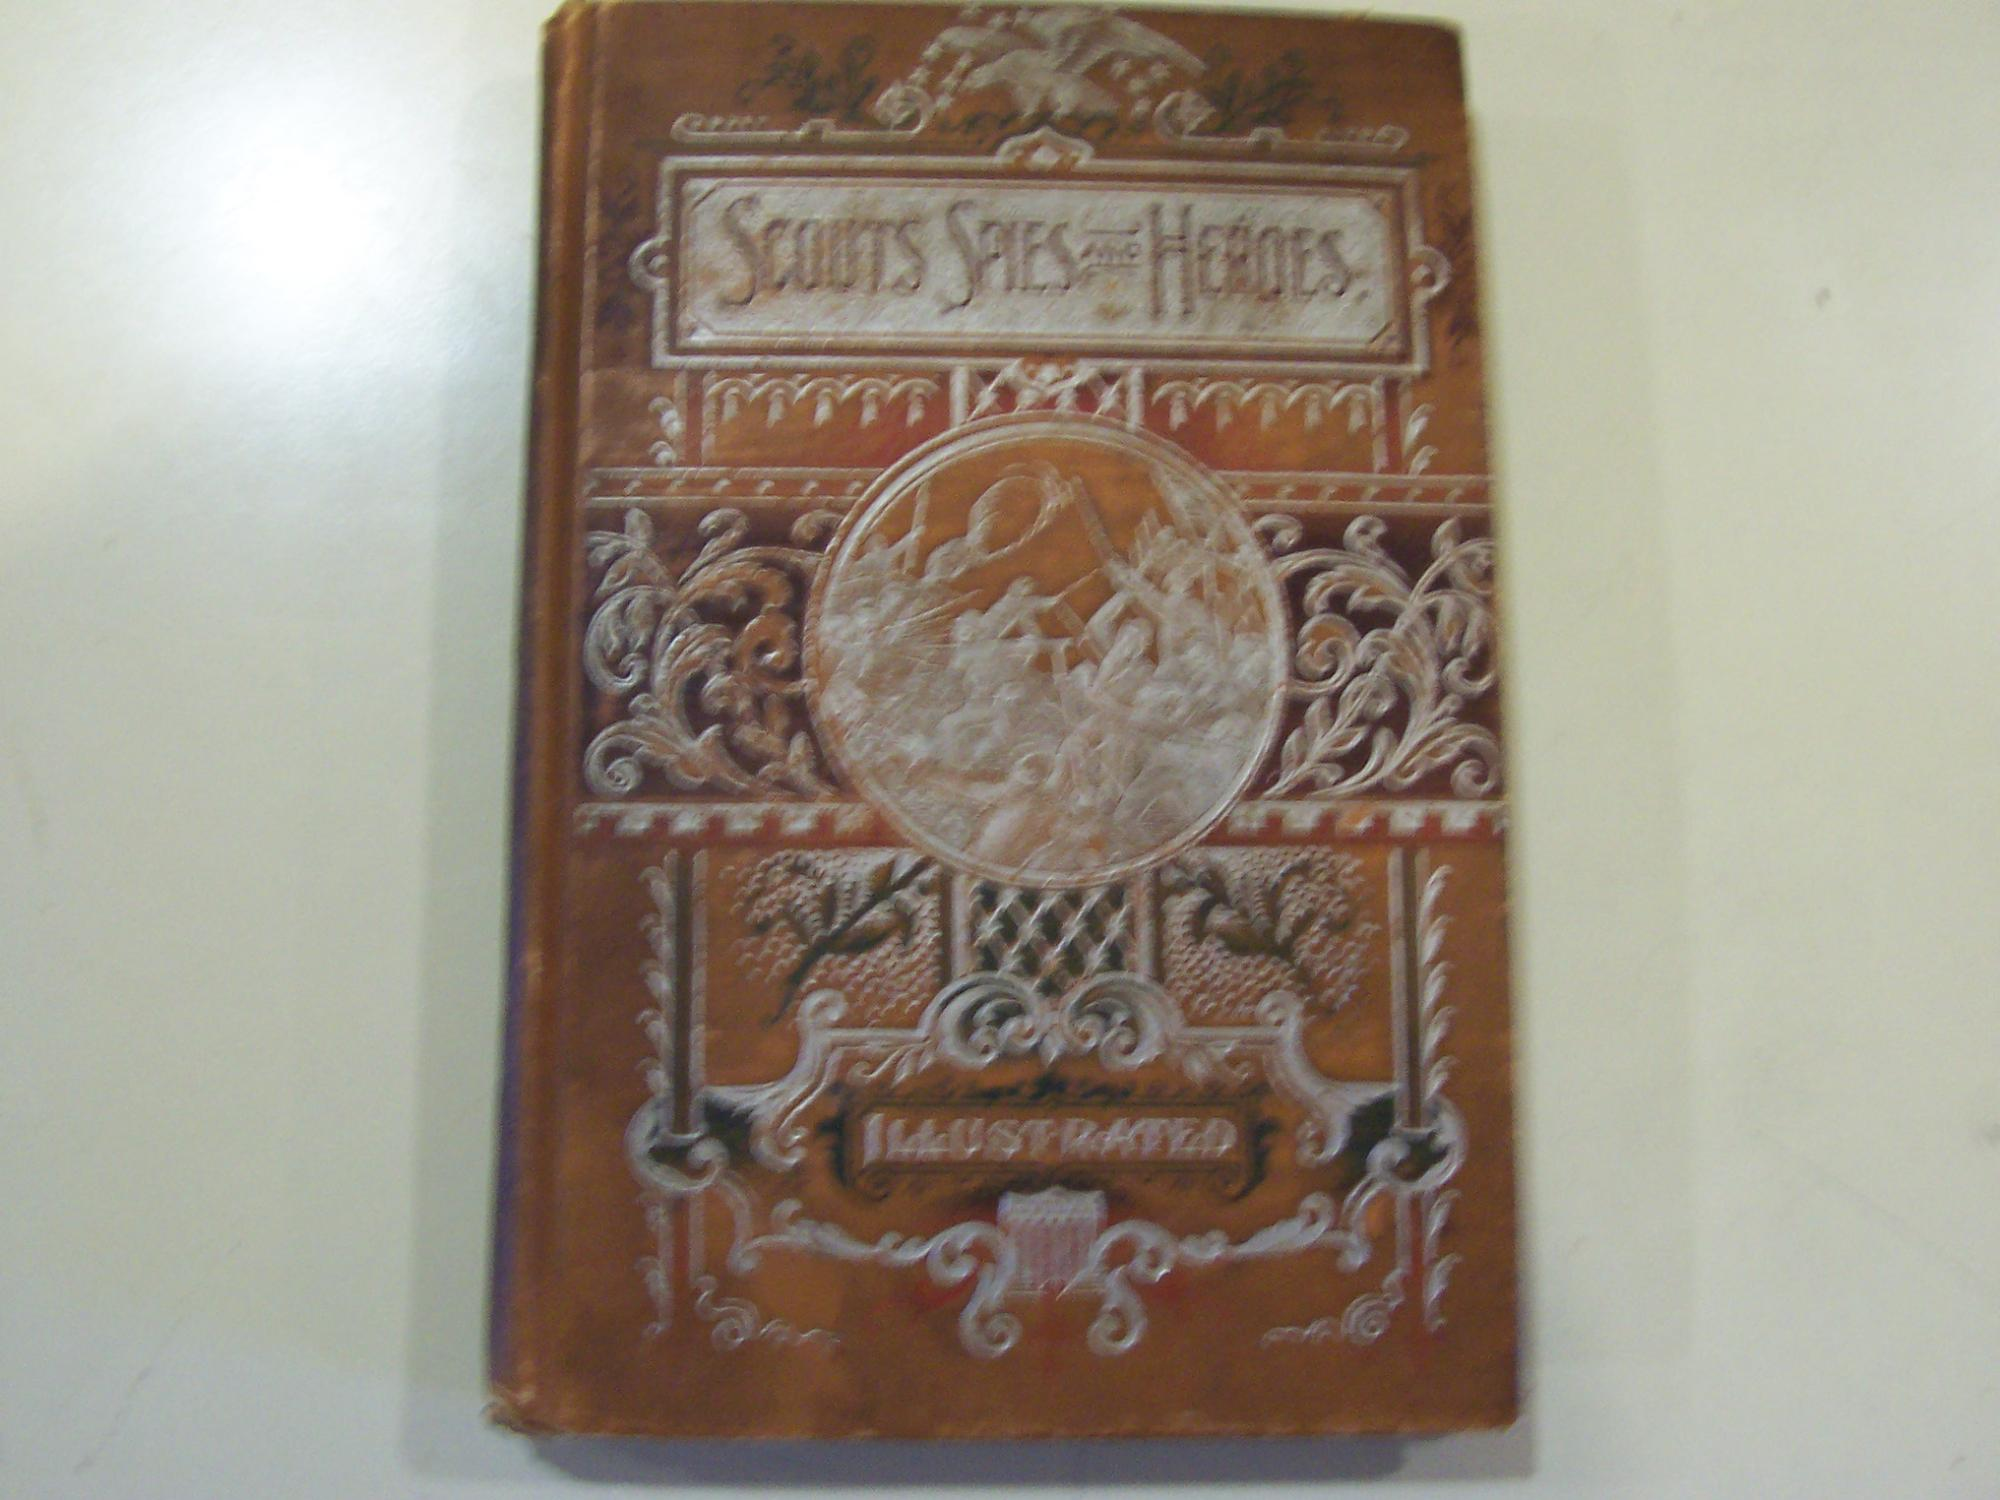 Scouts, Spies, and Heroes of the Great Civil War (Salesman's Sample) Captain Joseph Powers Hazelton Good Hardcover